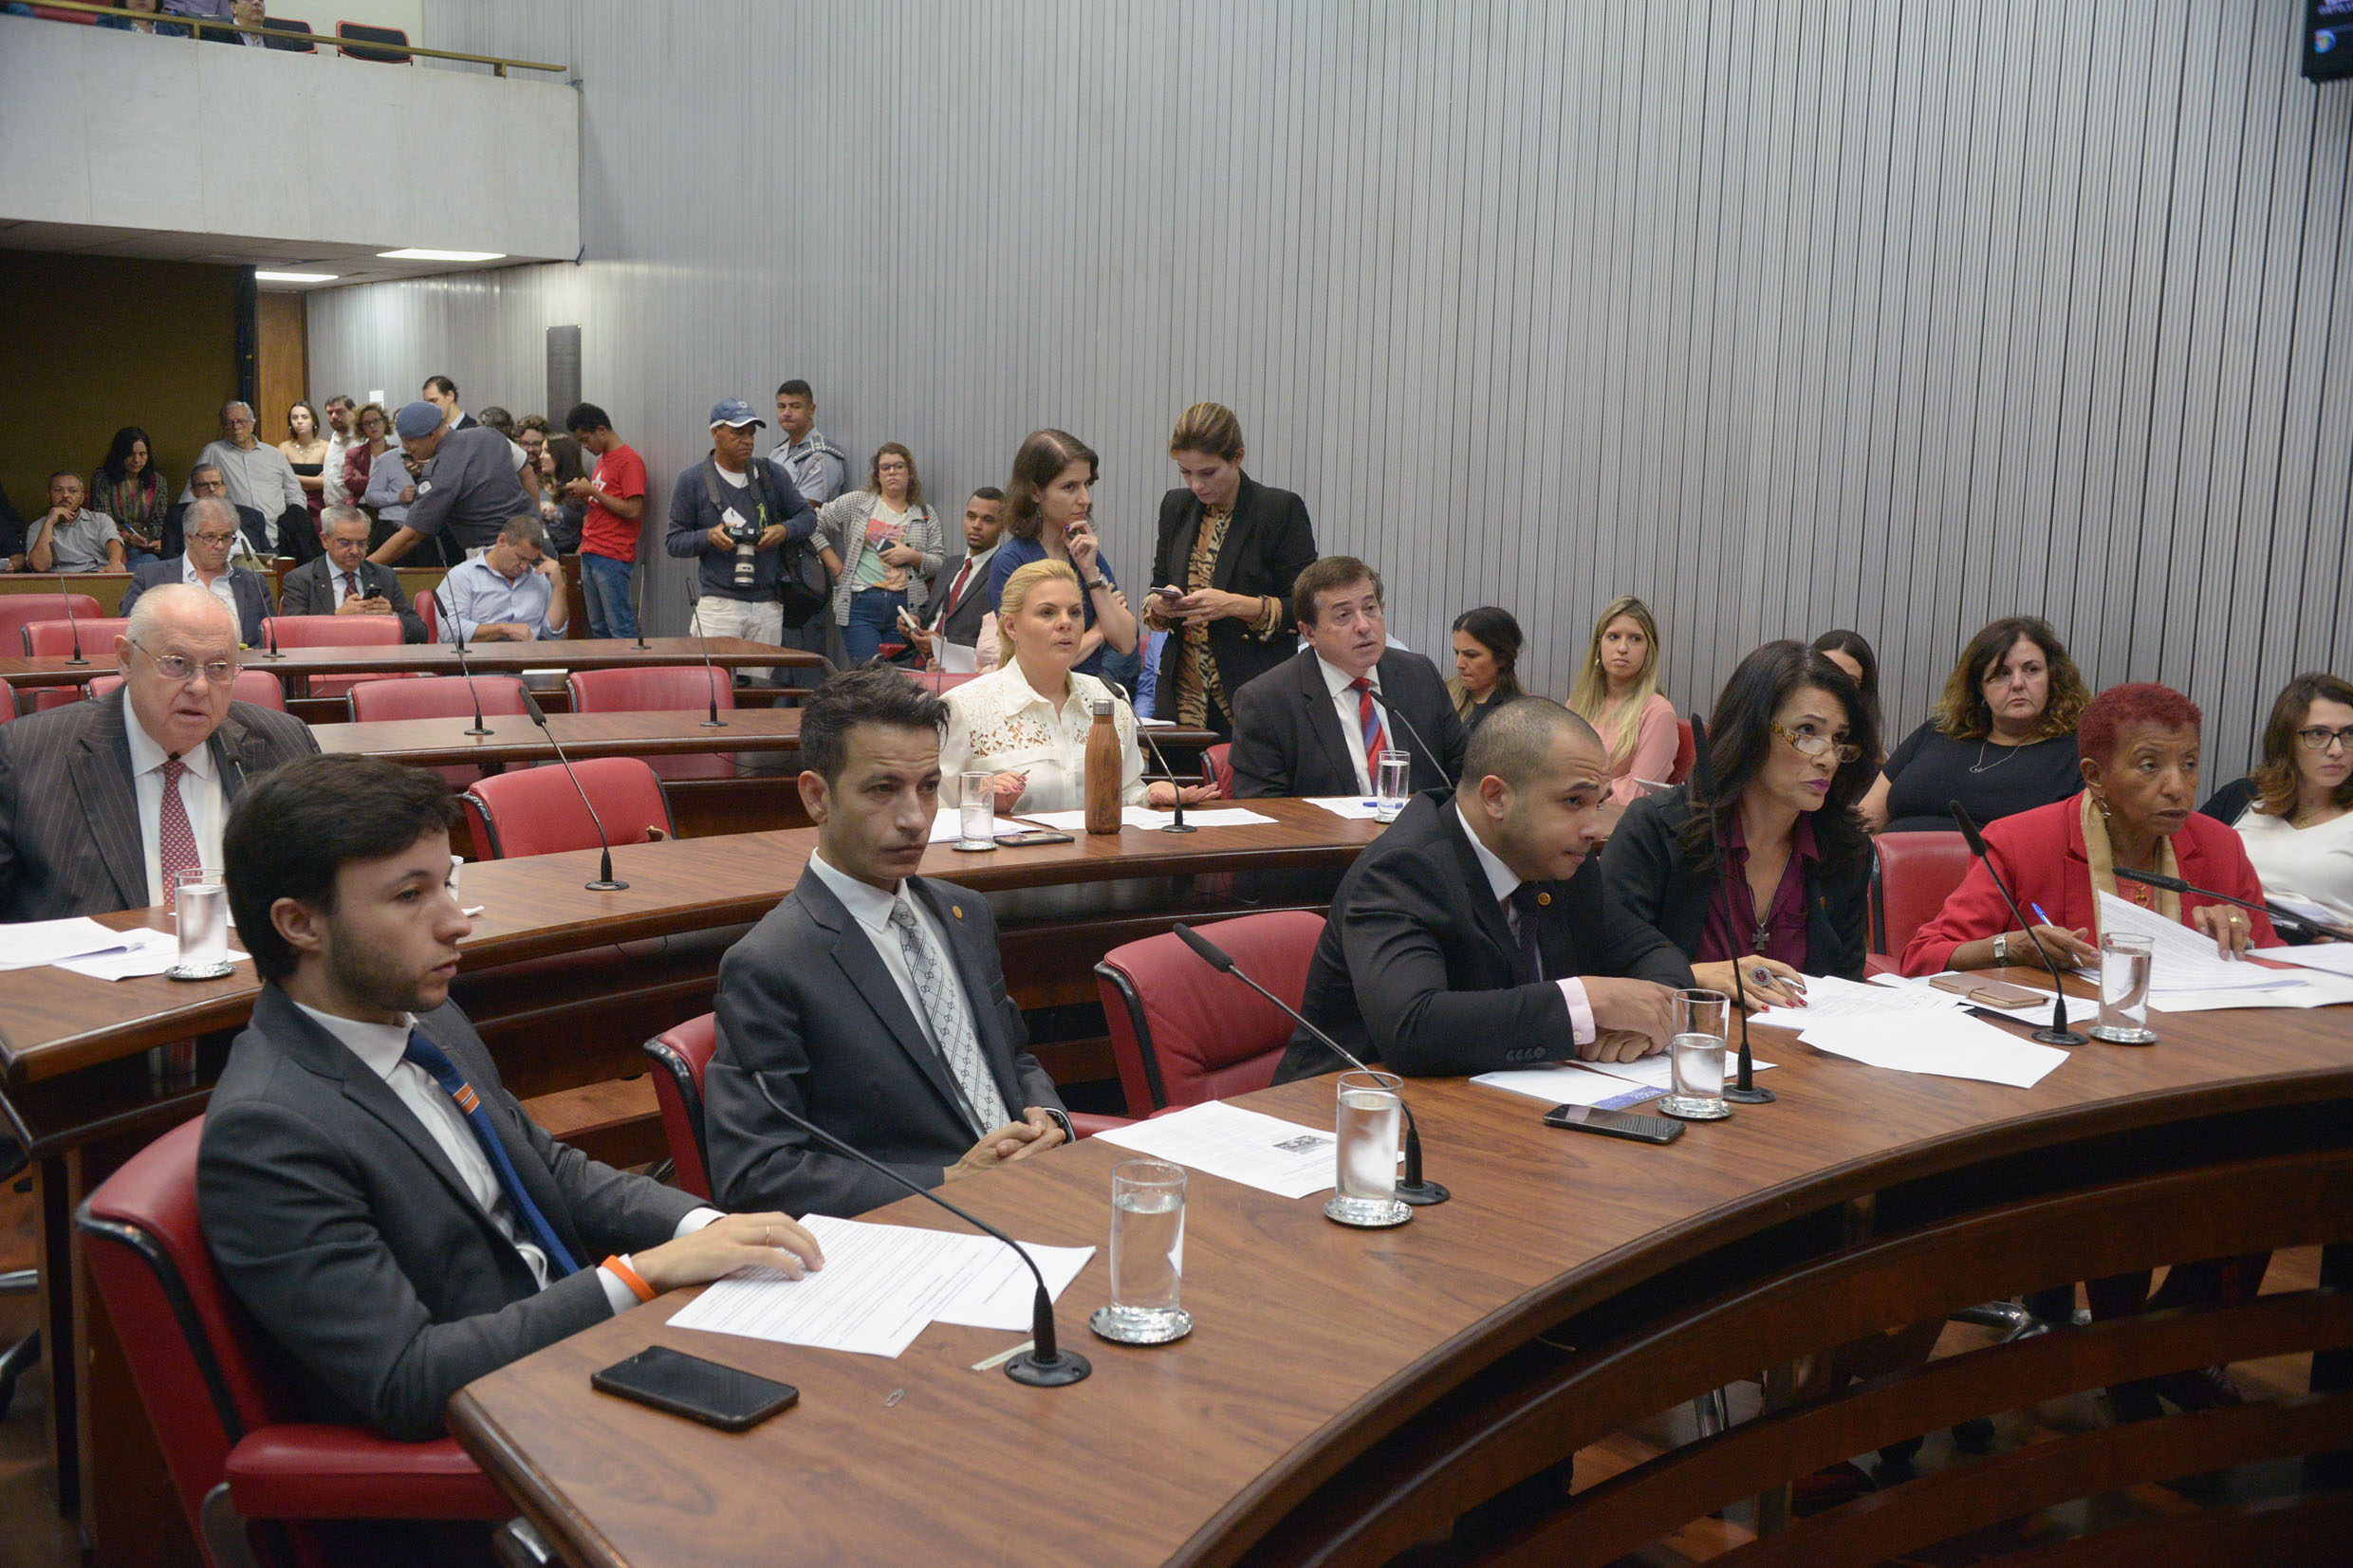 Parlamentares na CPI<a style='float:right' href='https://www3.al.sp.gov.br/repositorio/noticia/N-05-2019/fg233742.jpg' target=_blank><img src='/_img/material-file-download-white.png' width='14px' alt='Clique para baixar a imagem'></a>